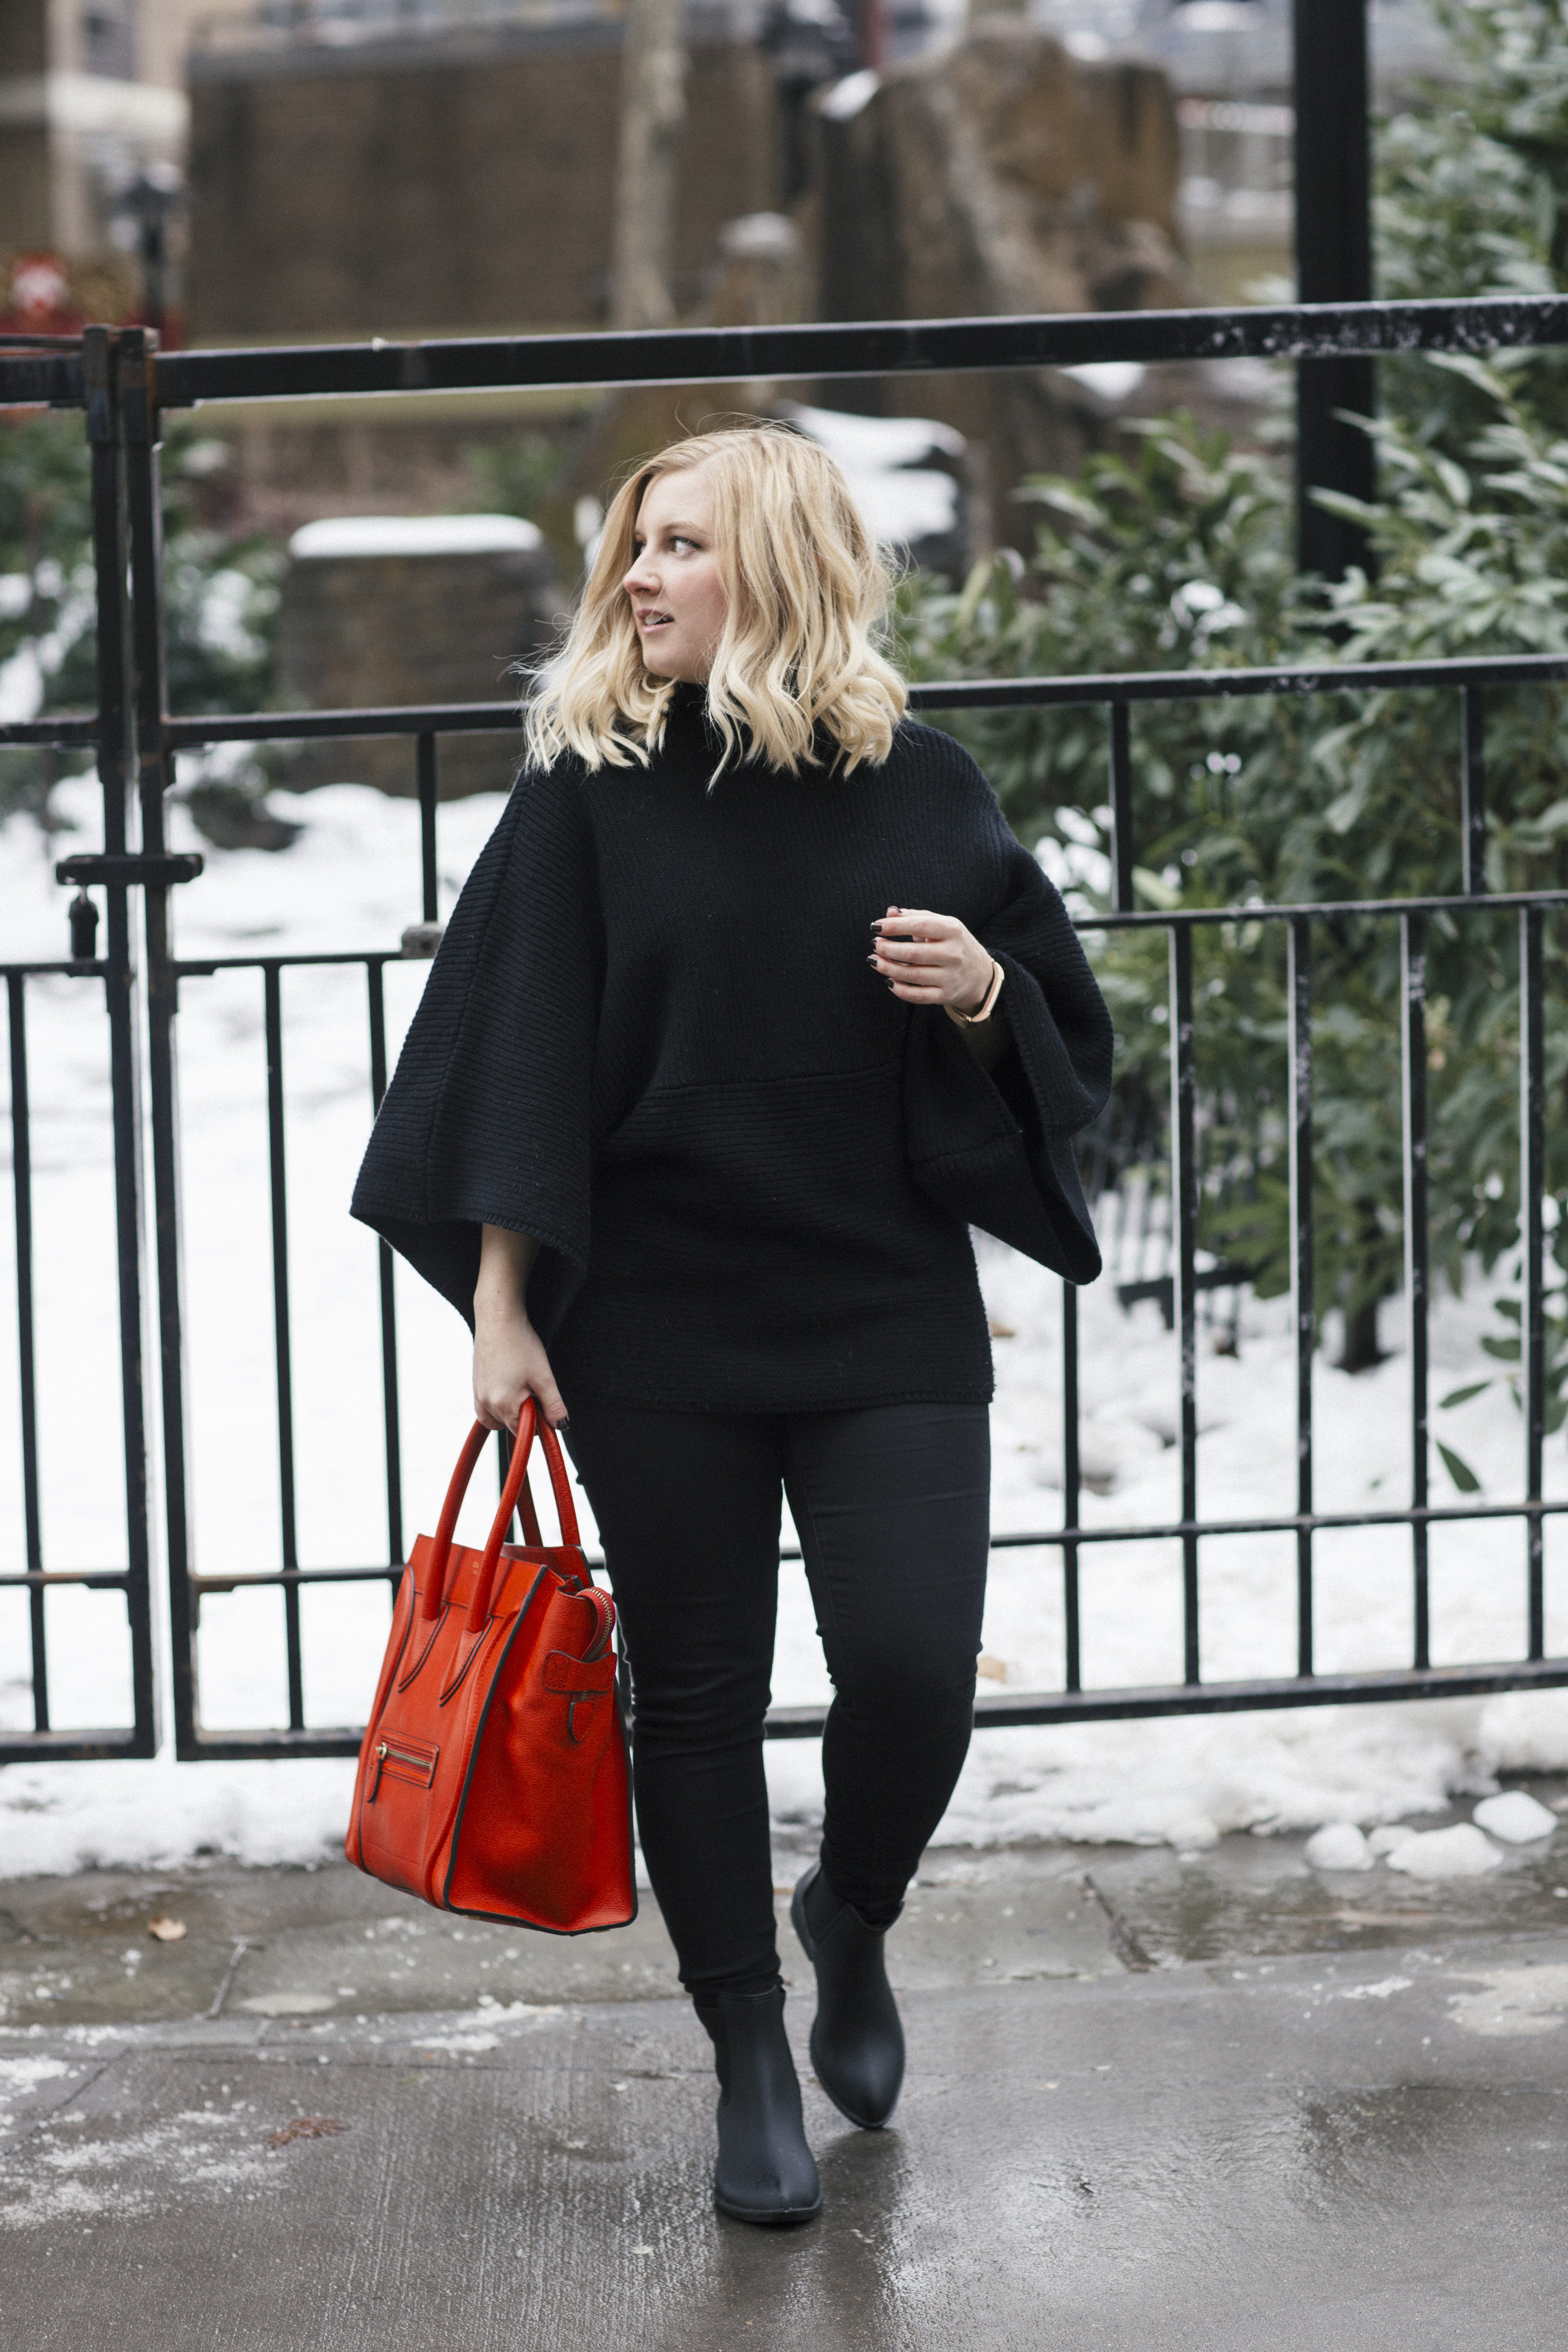 Paired a red Celine with an all black outfit to create this NYFW ready look! Save money on designer items by shopping 5% off at Trendlee!